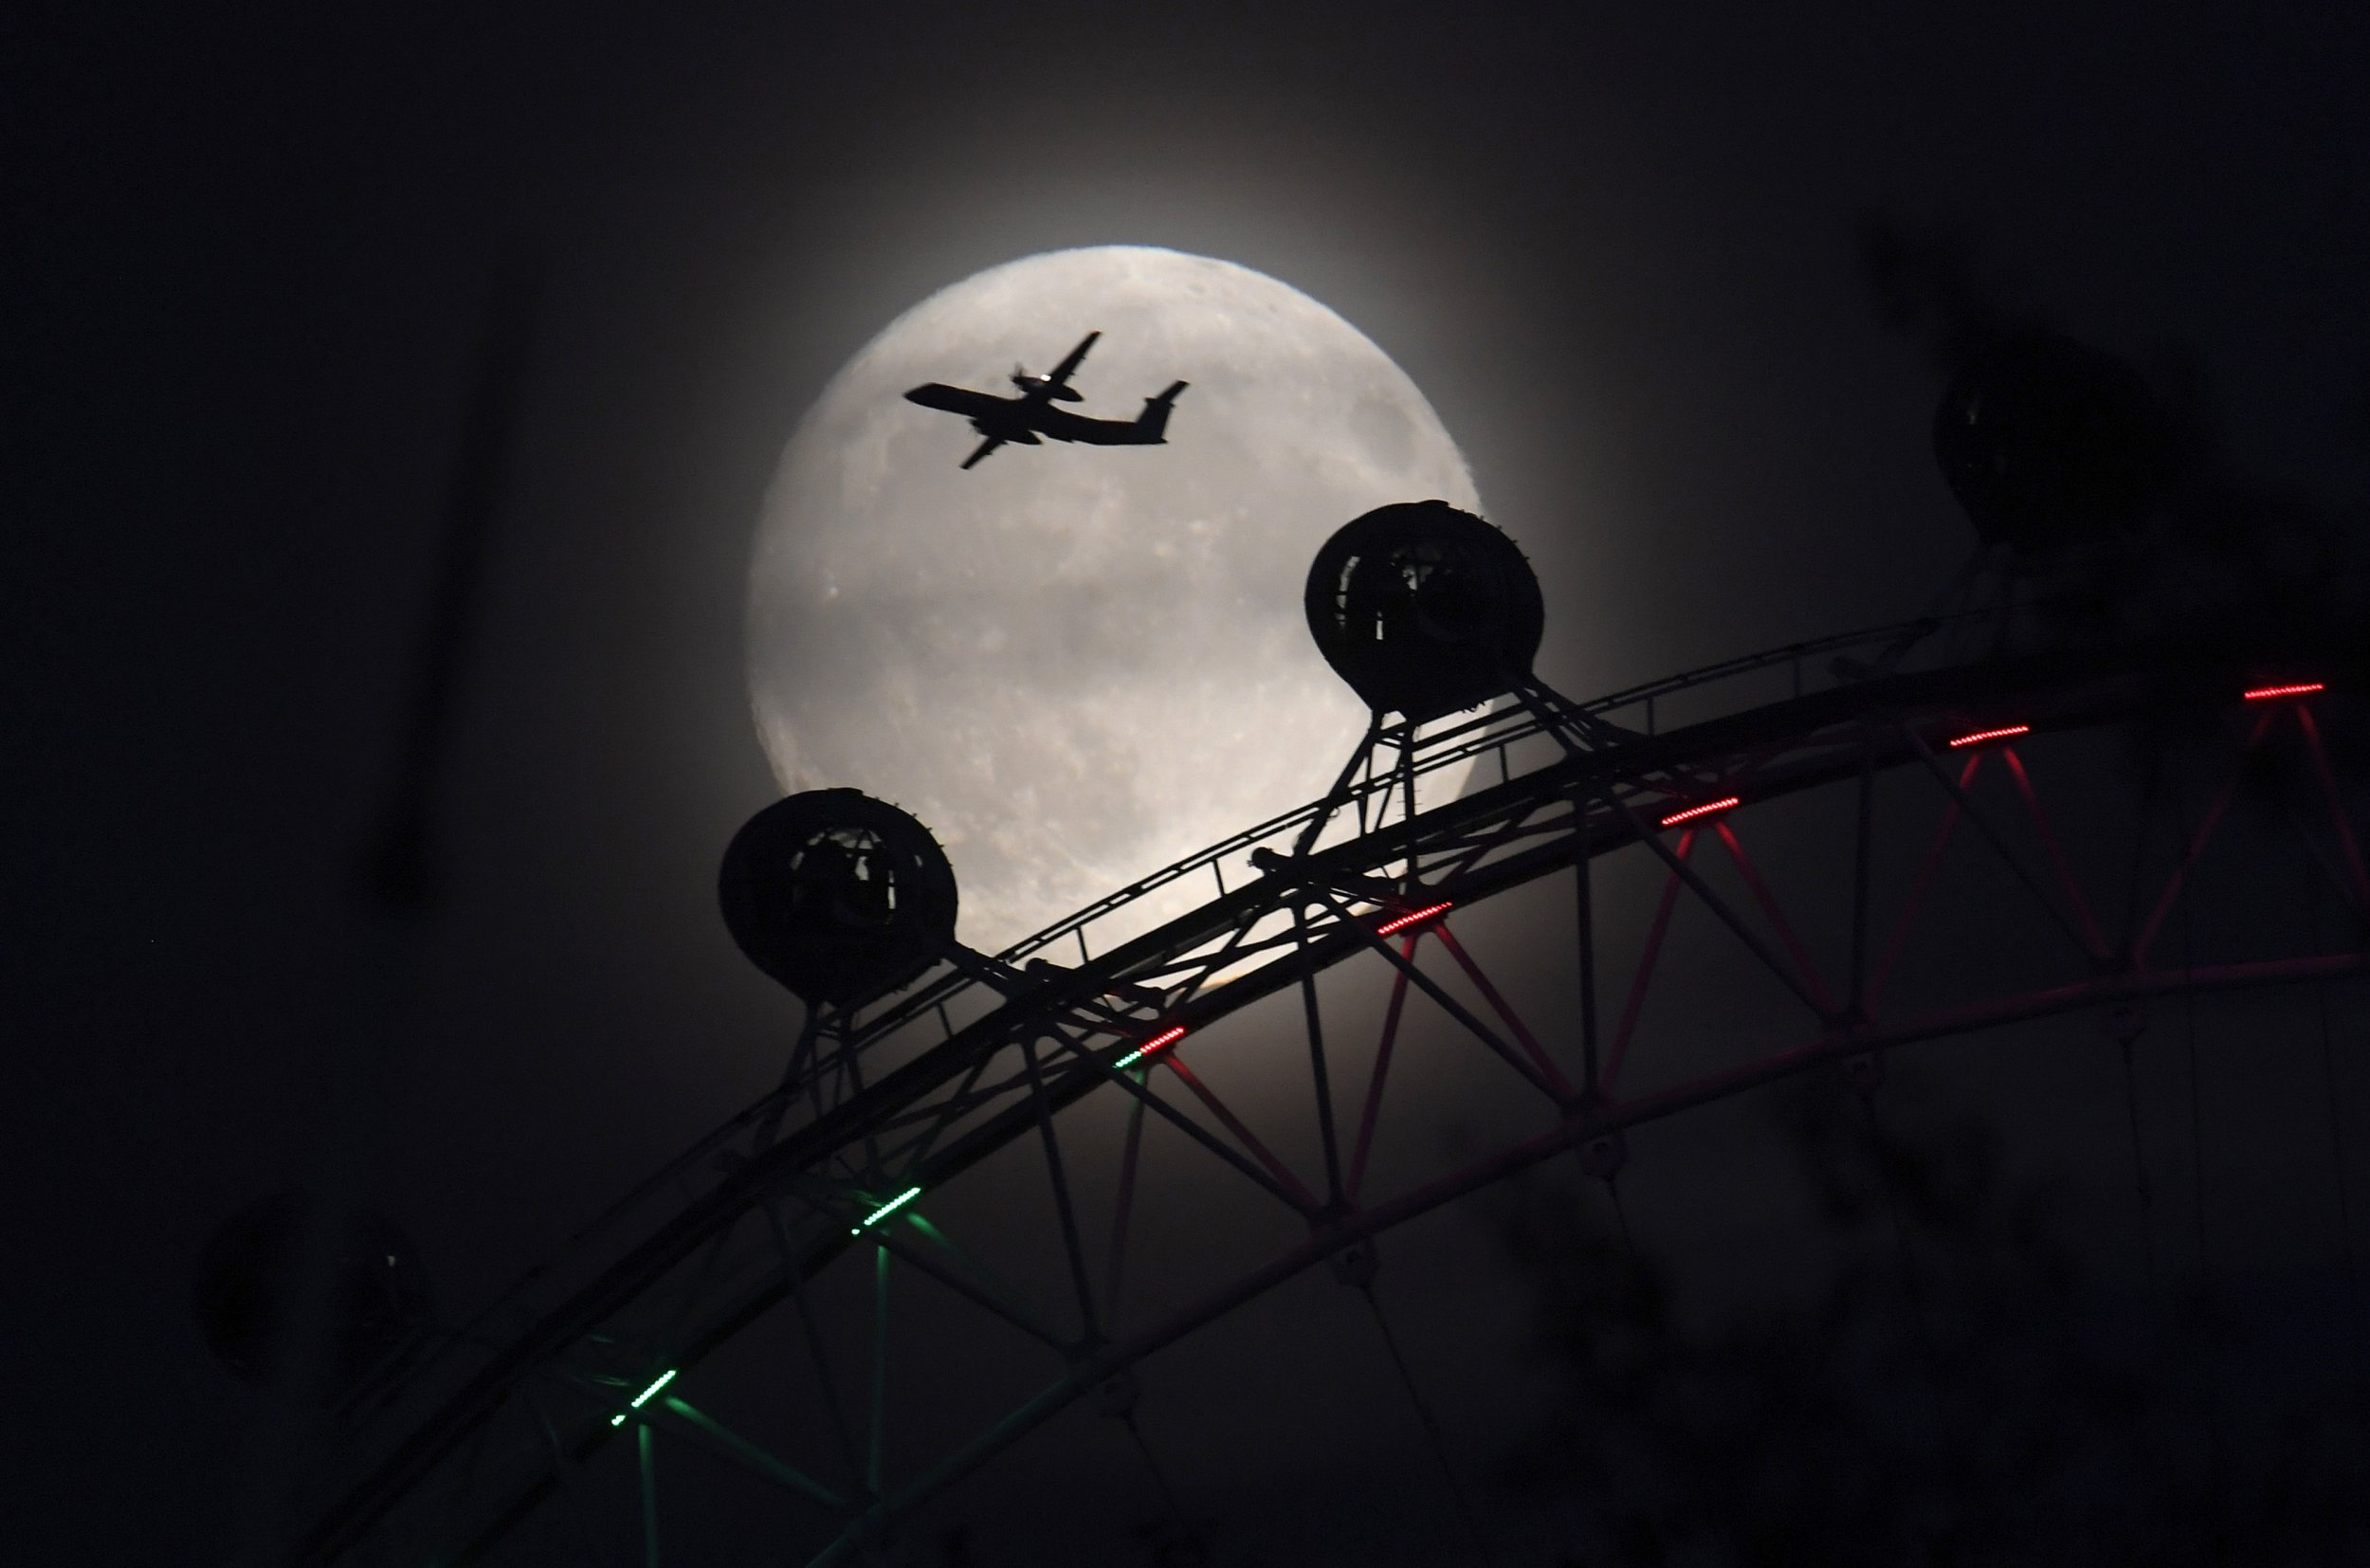 Supermoon over the London Eye